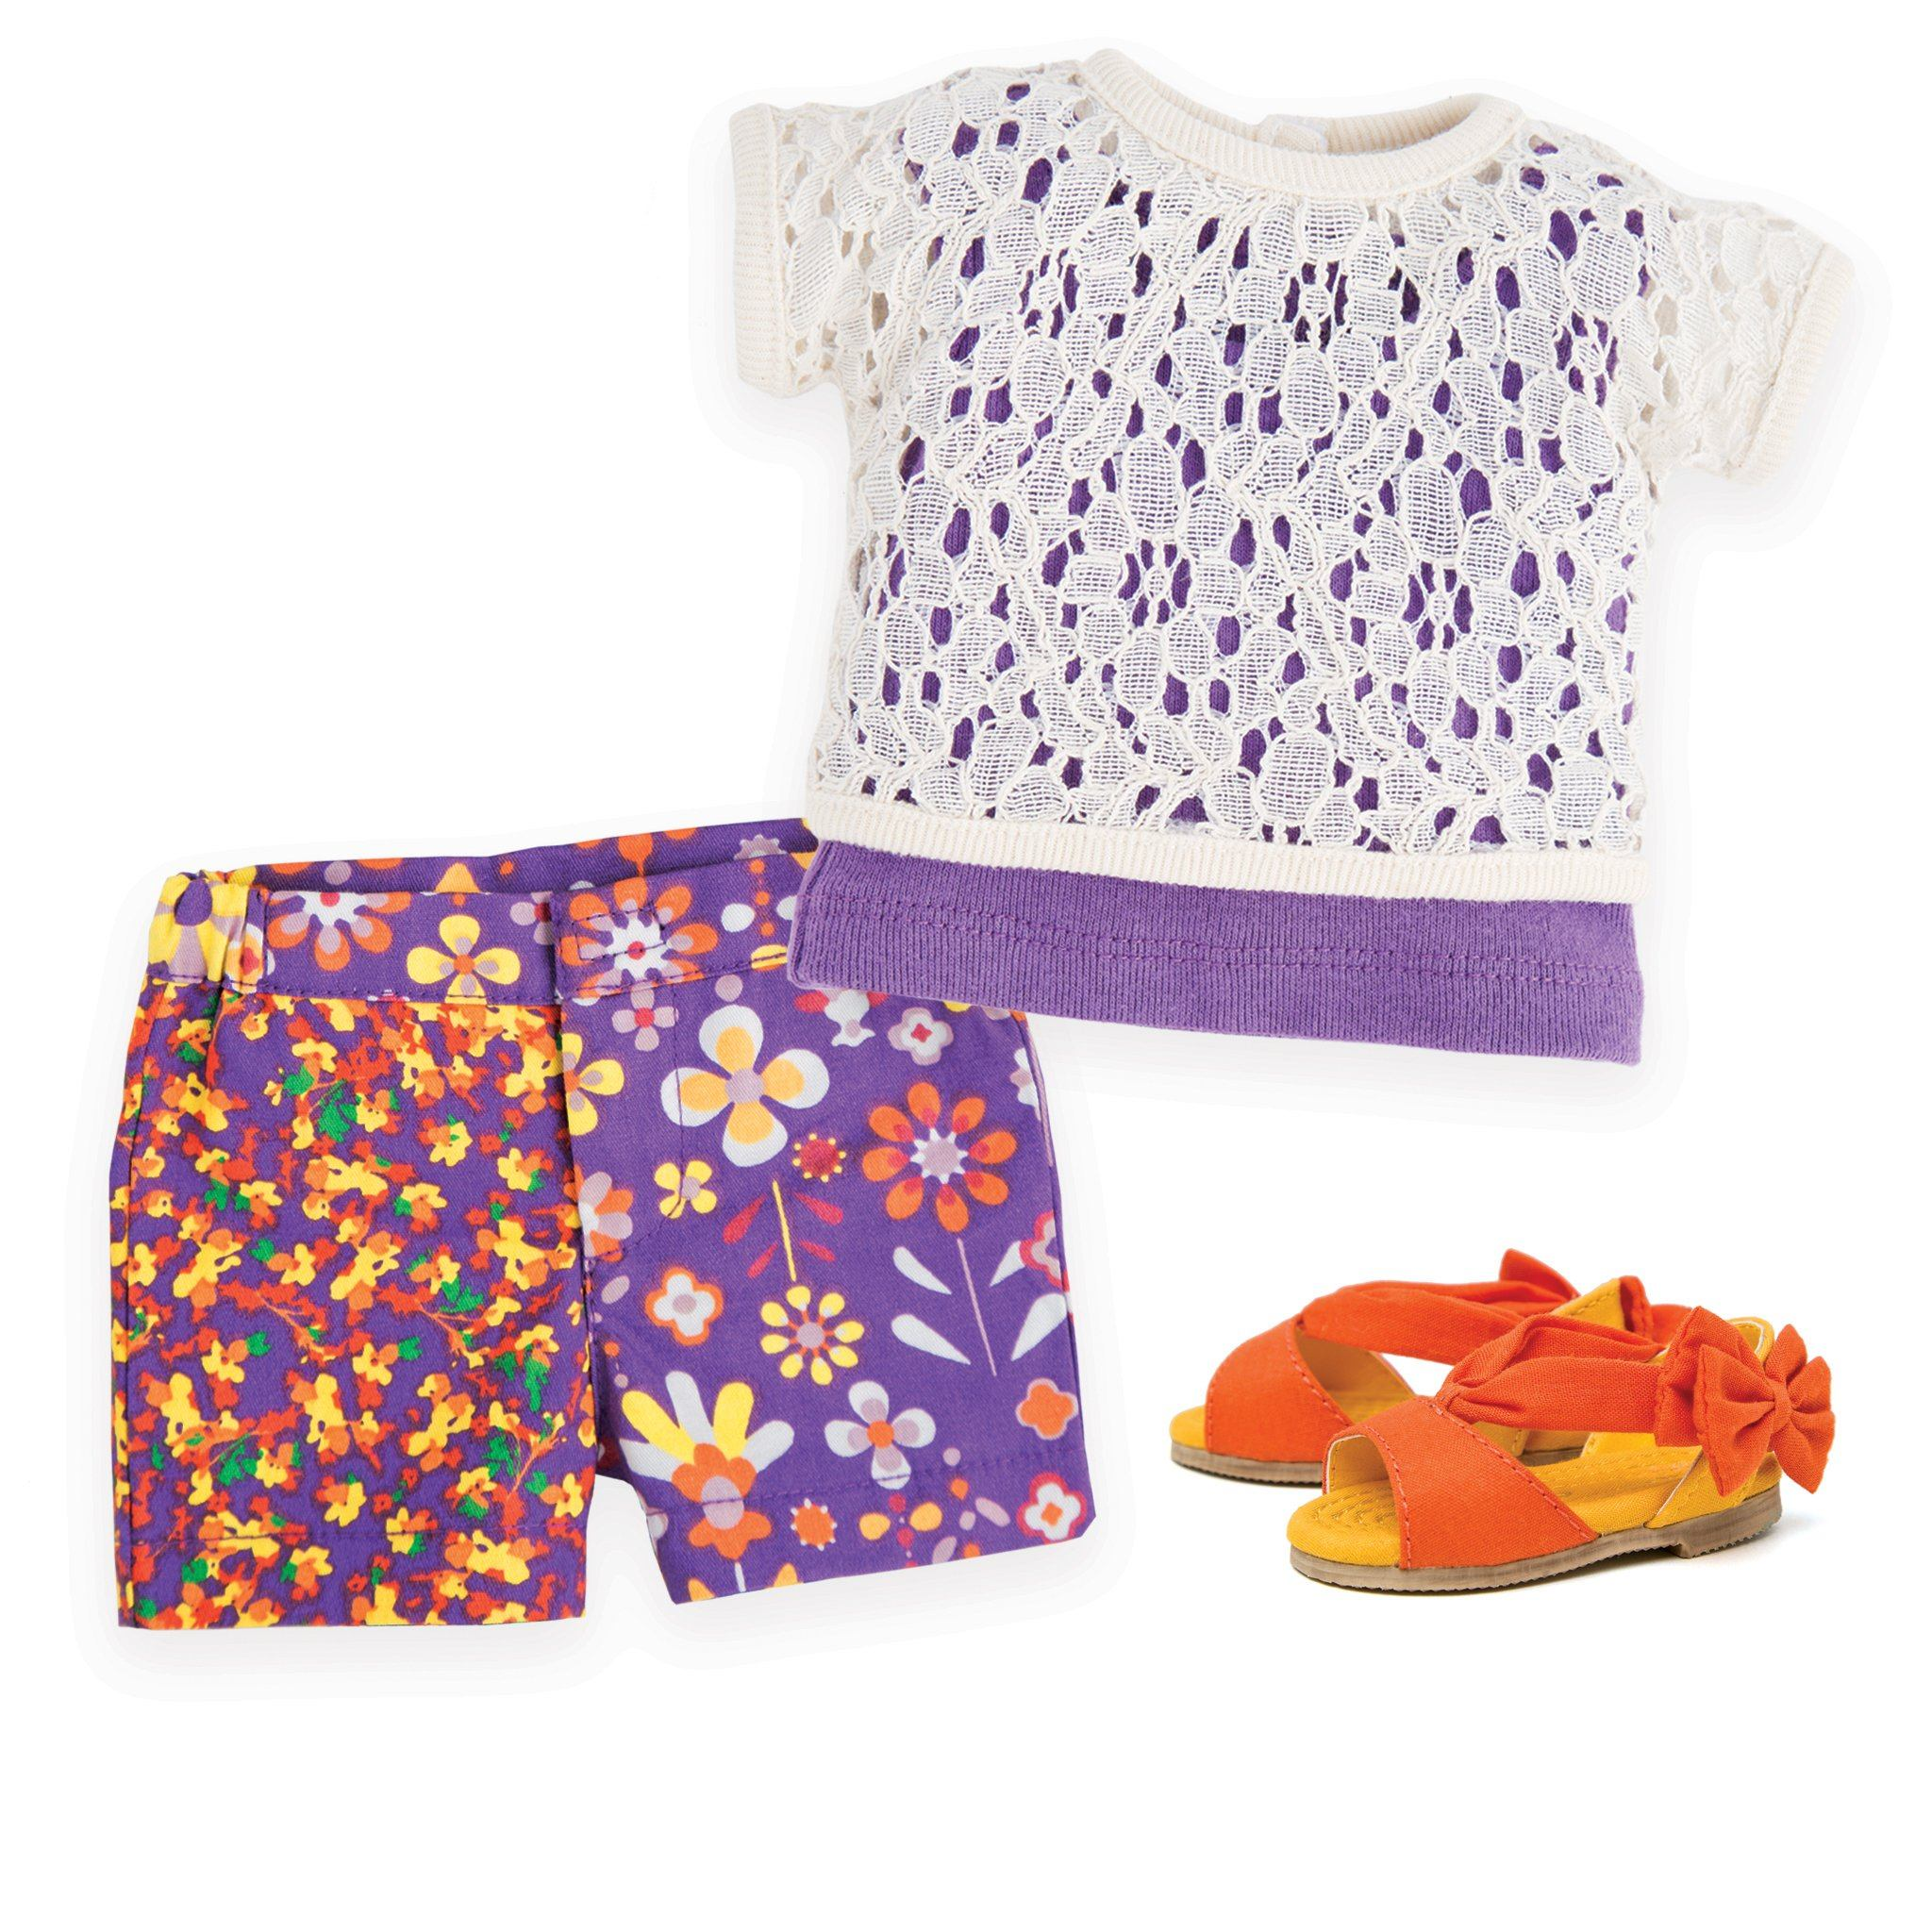 Multi-colour floral shorts, white lace two layer top and orange bow sandals fits all 18 inch dolls.